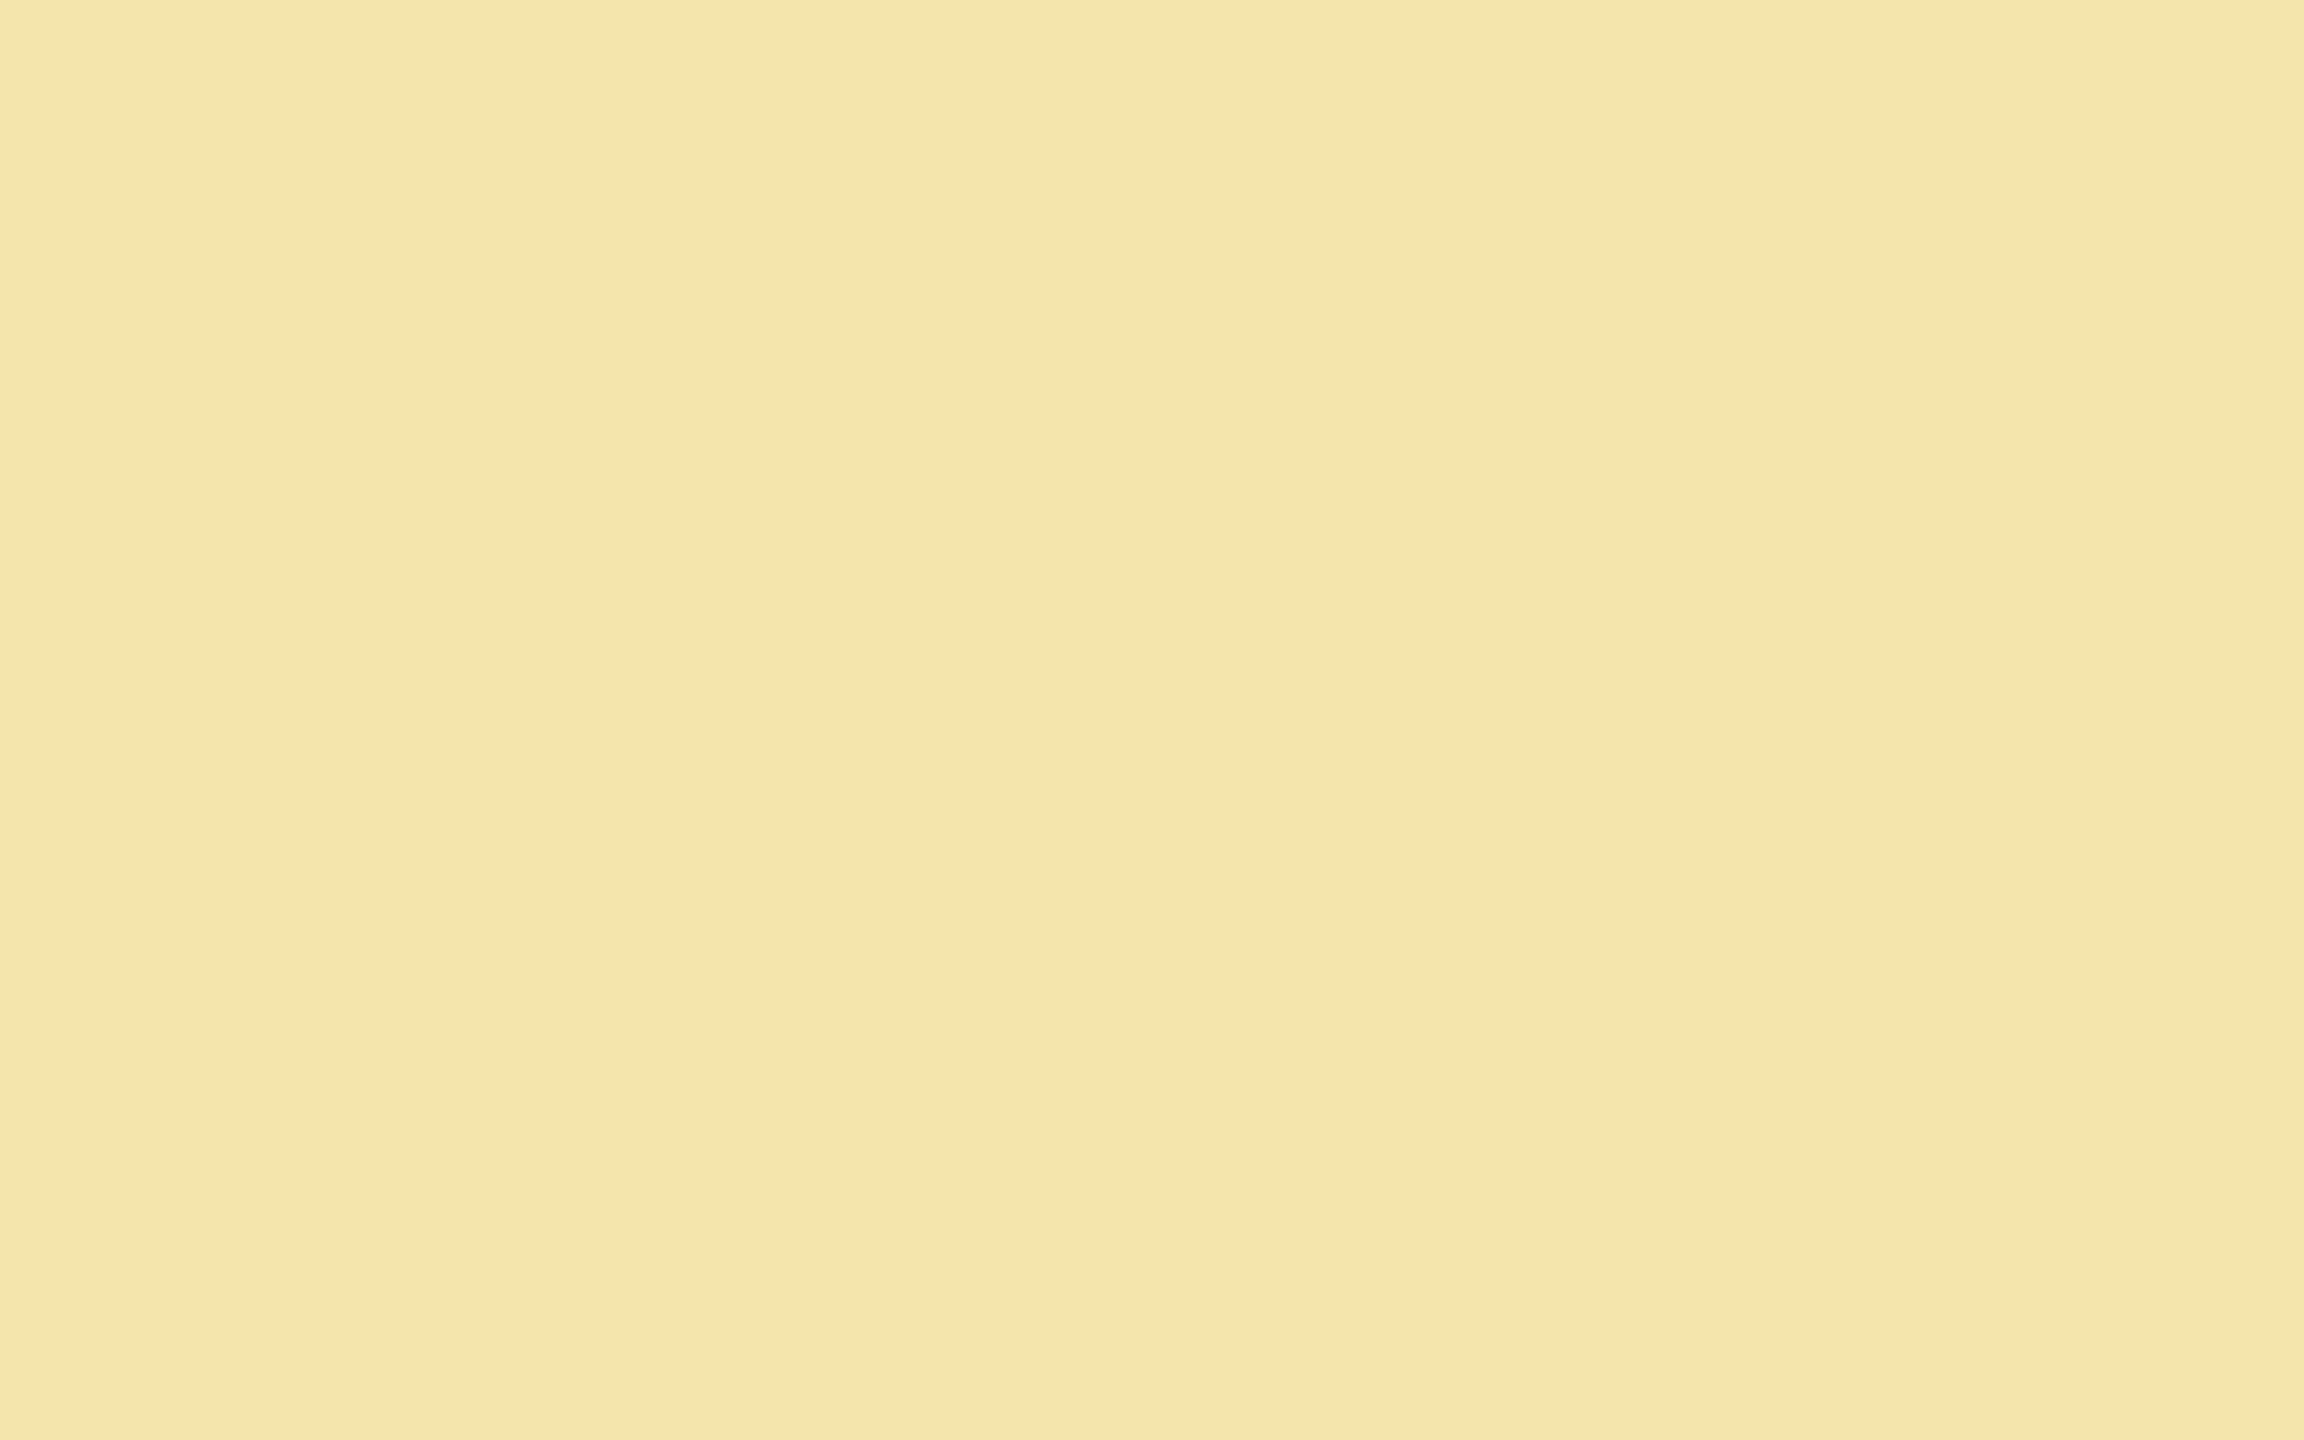 2304x1440 Medium Champagne Solid Color Background